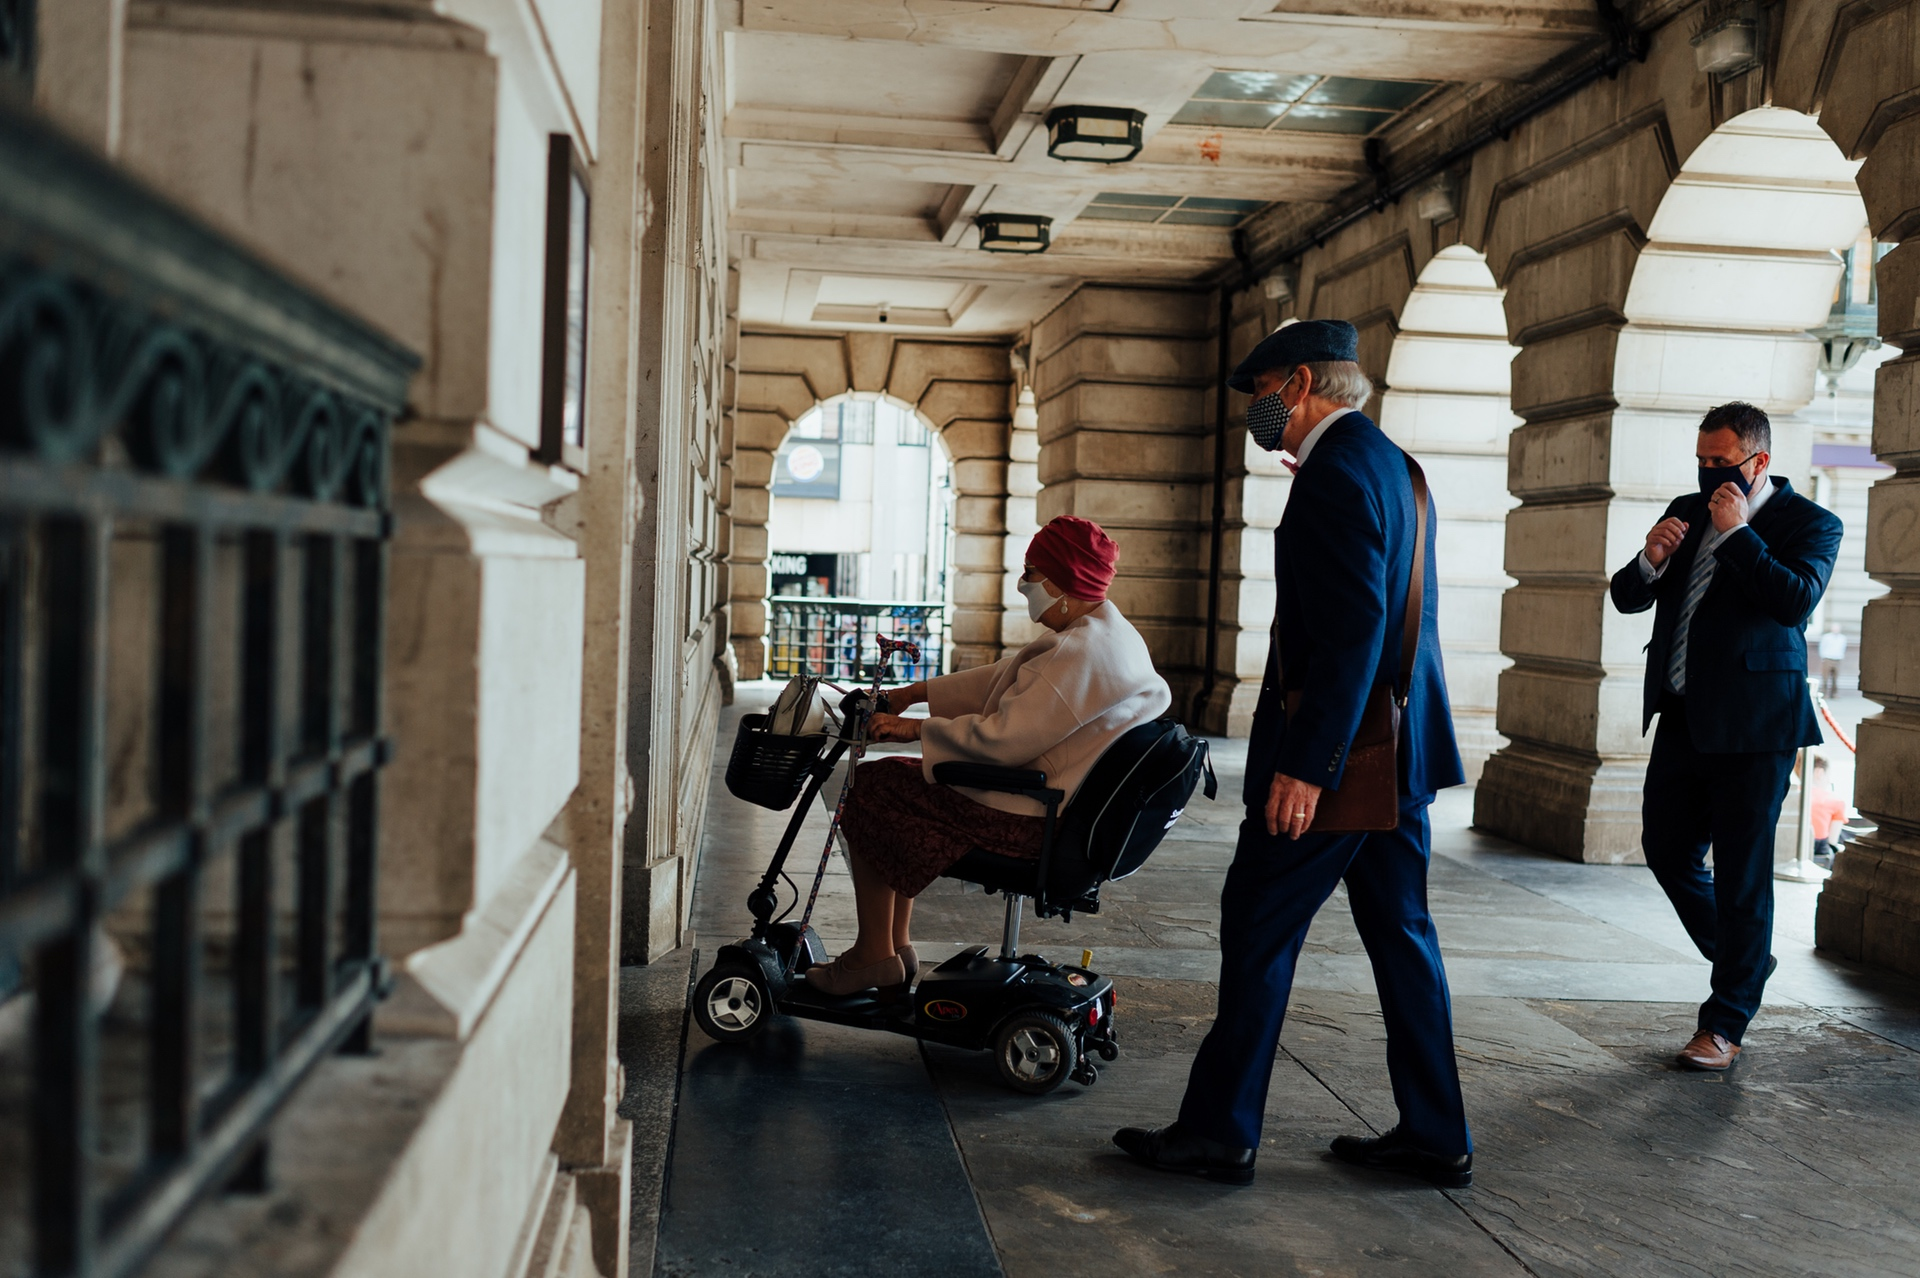 Nottingham's Council House Wedding Reportage - UK Photography | The bride's mother arrives for the ceremony